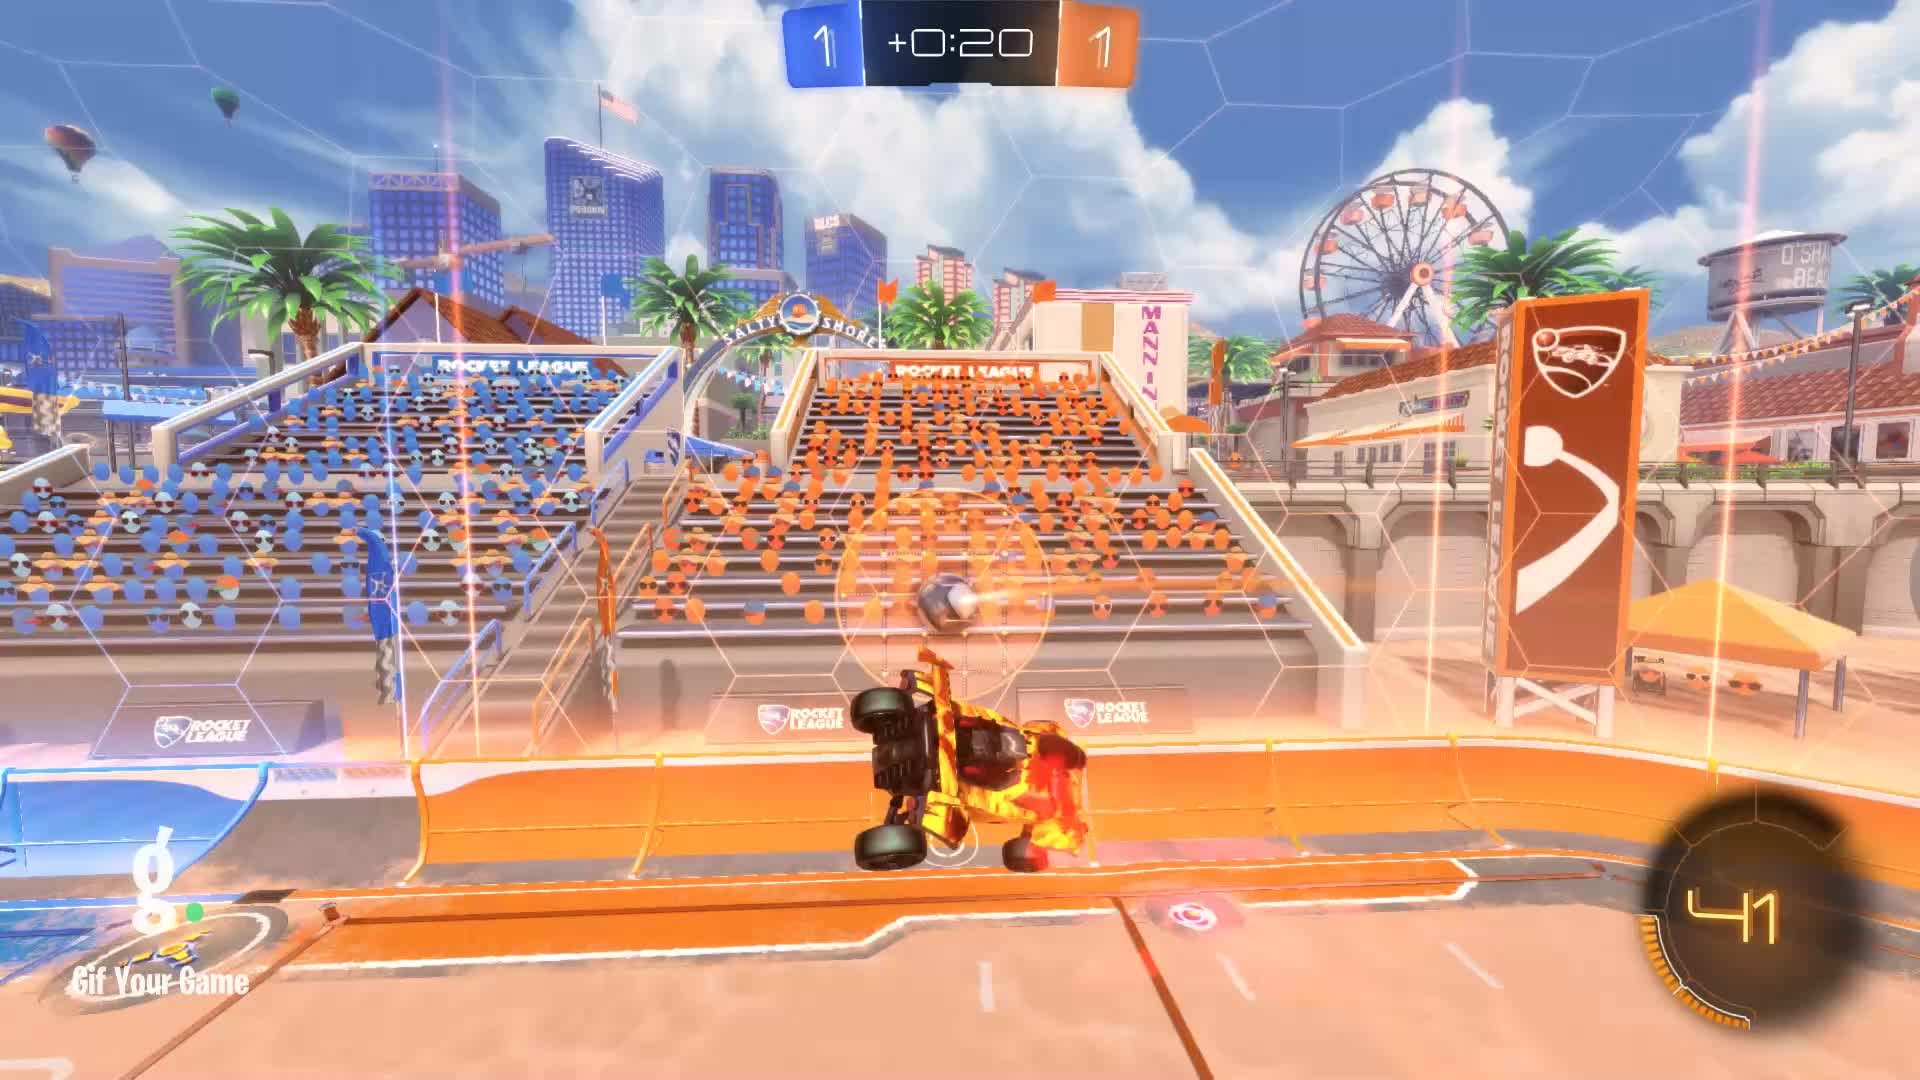 Gif Your Game, GifYourGame, LAM SewageSlurper, Rocket League, RocketLeague, Demo 6: [DMT] Tezza GIFs